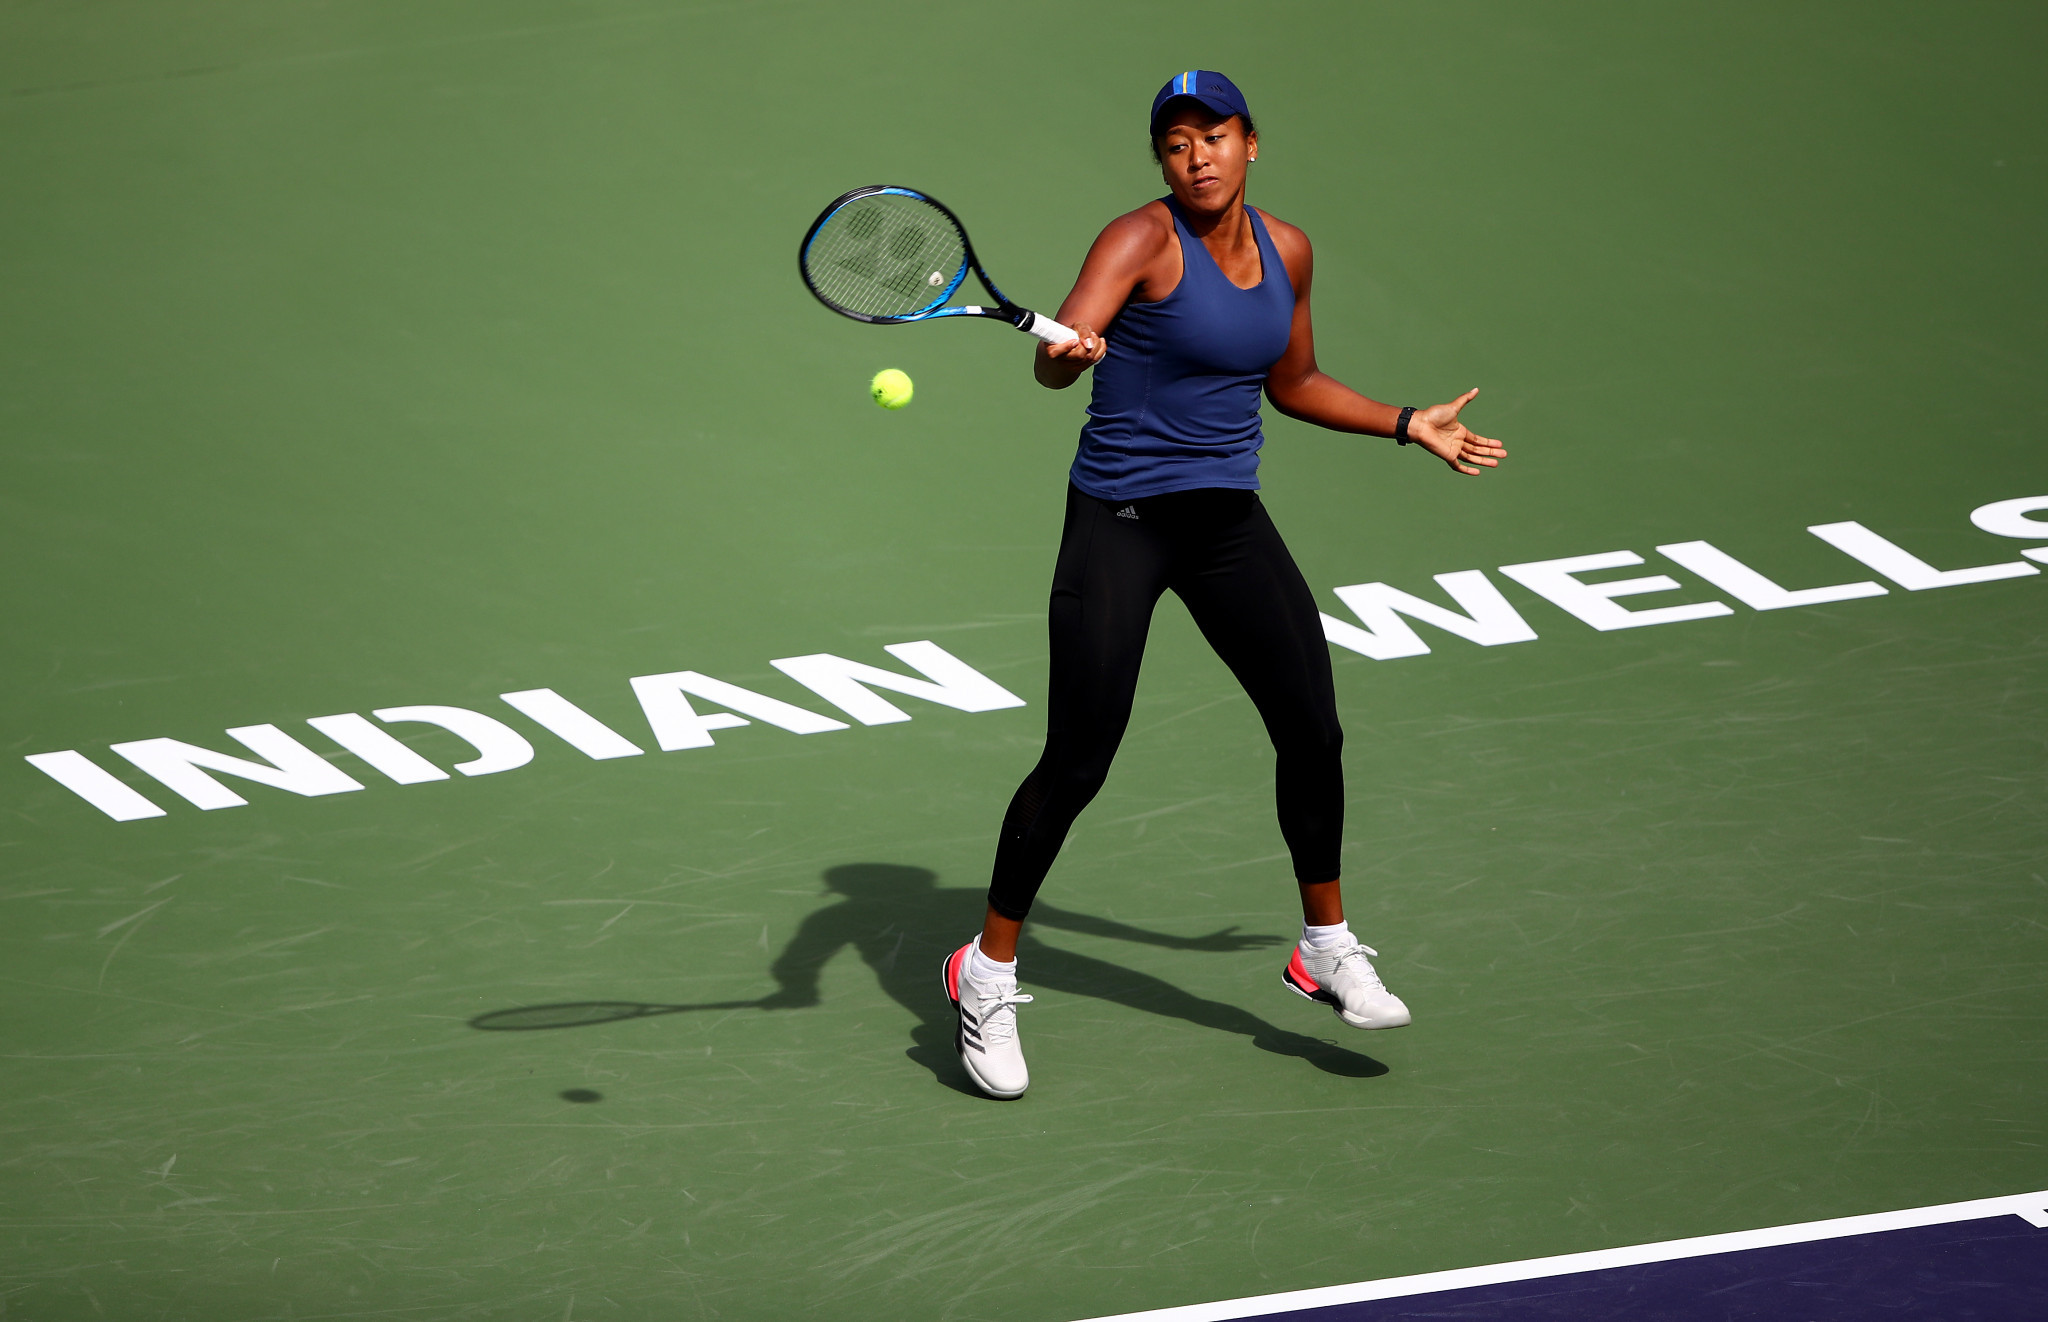 Women's world number one Naomi Osaka is also in action at Indian Wells ©Getty Images